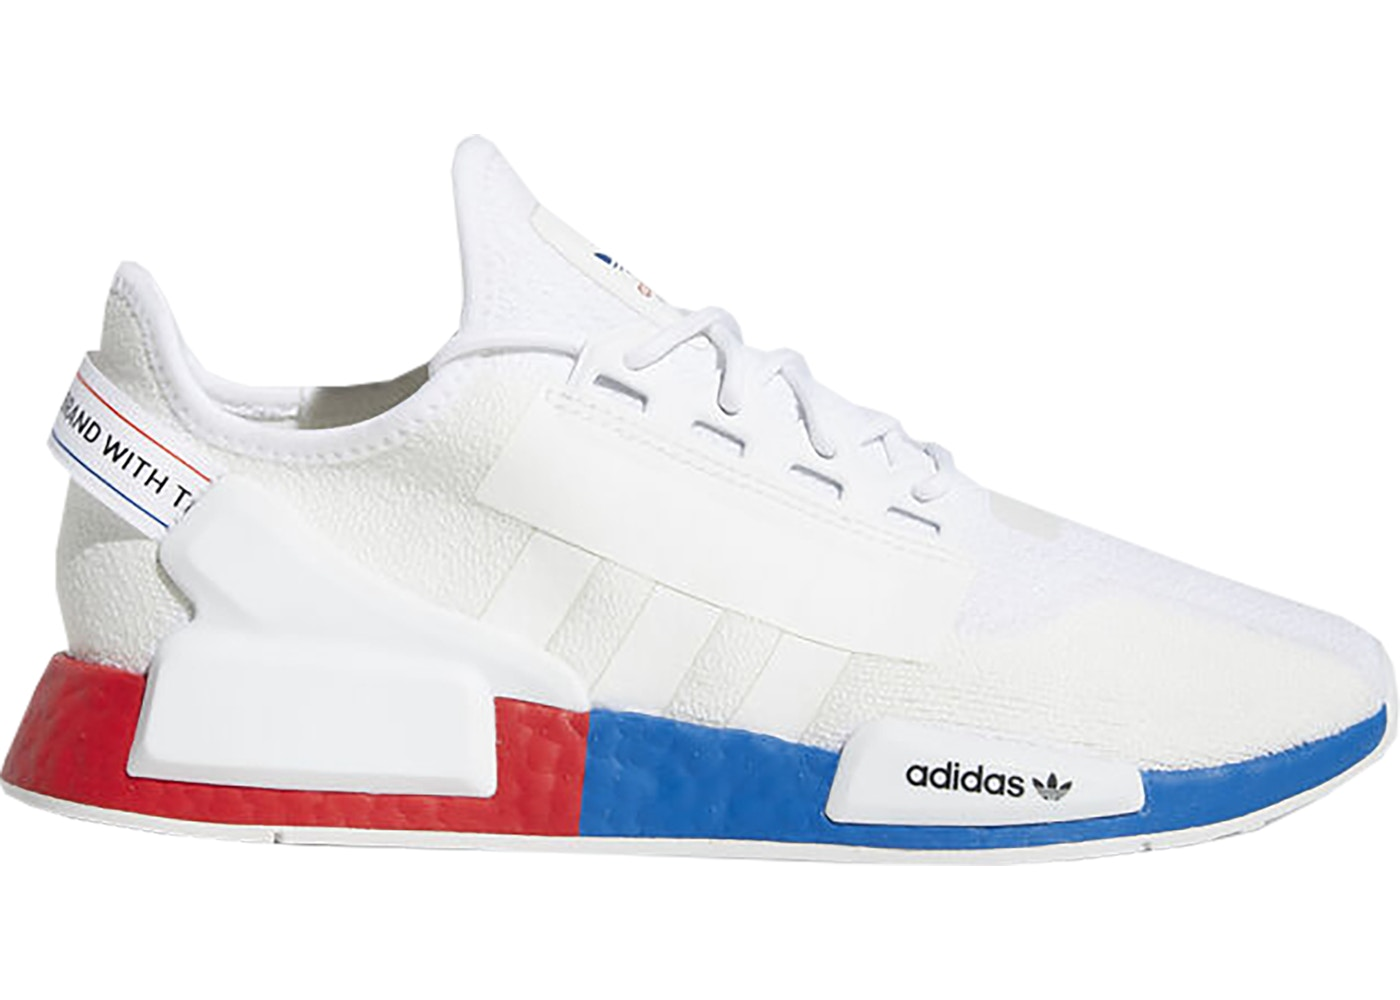 Adidas Nmd R1 White Red Blue Fx4148